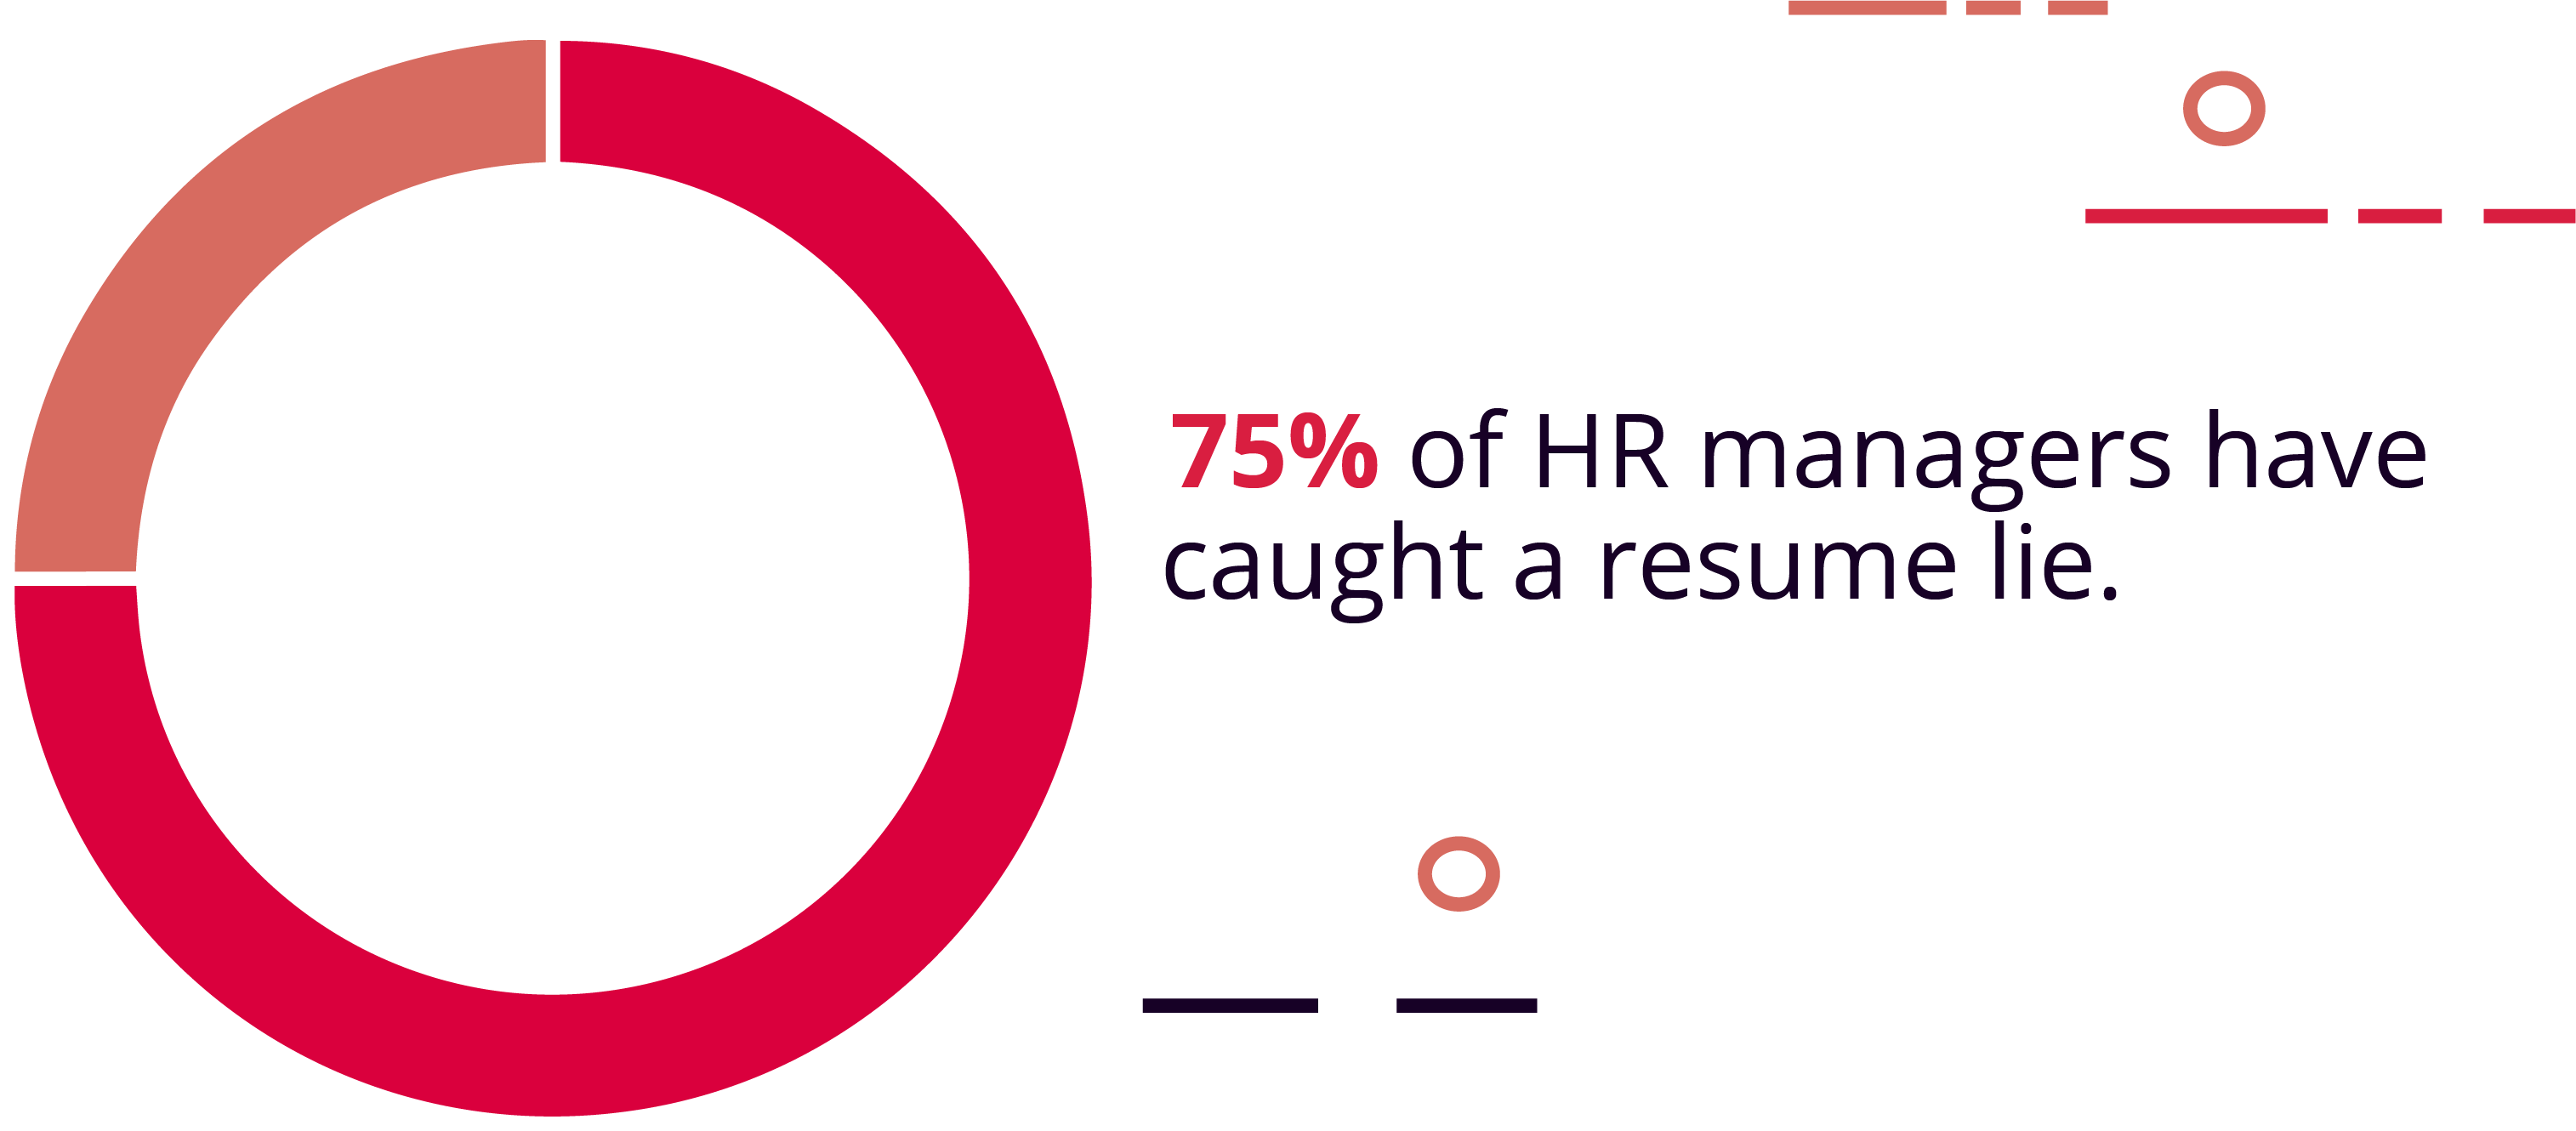 75% of Hiring Managers Have Caught a Lie on a Resume